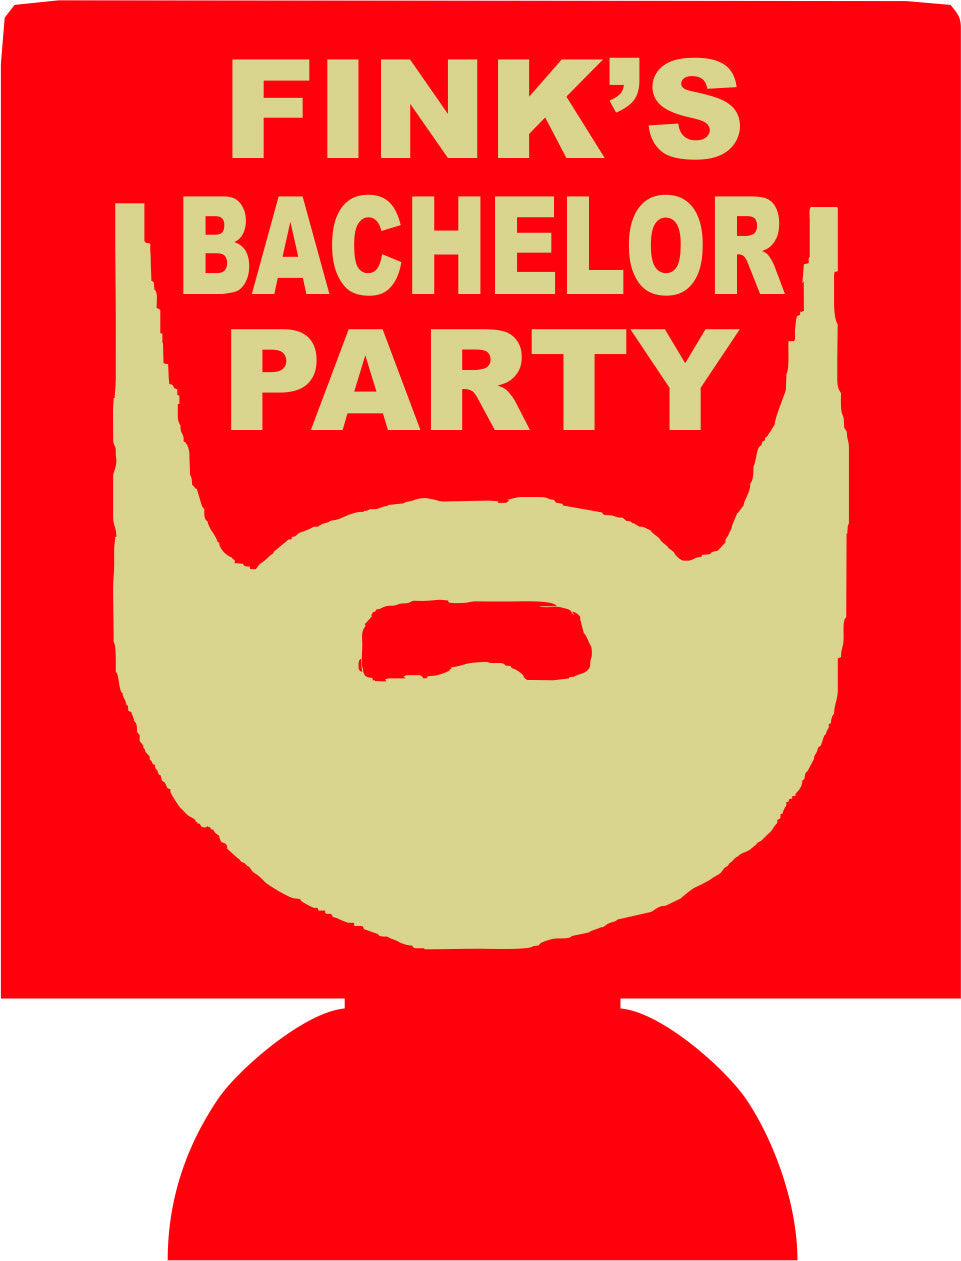 Beard Bachelor party koozie custom favors